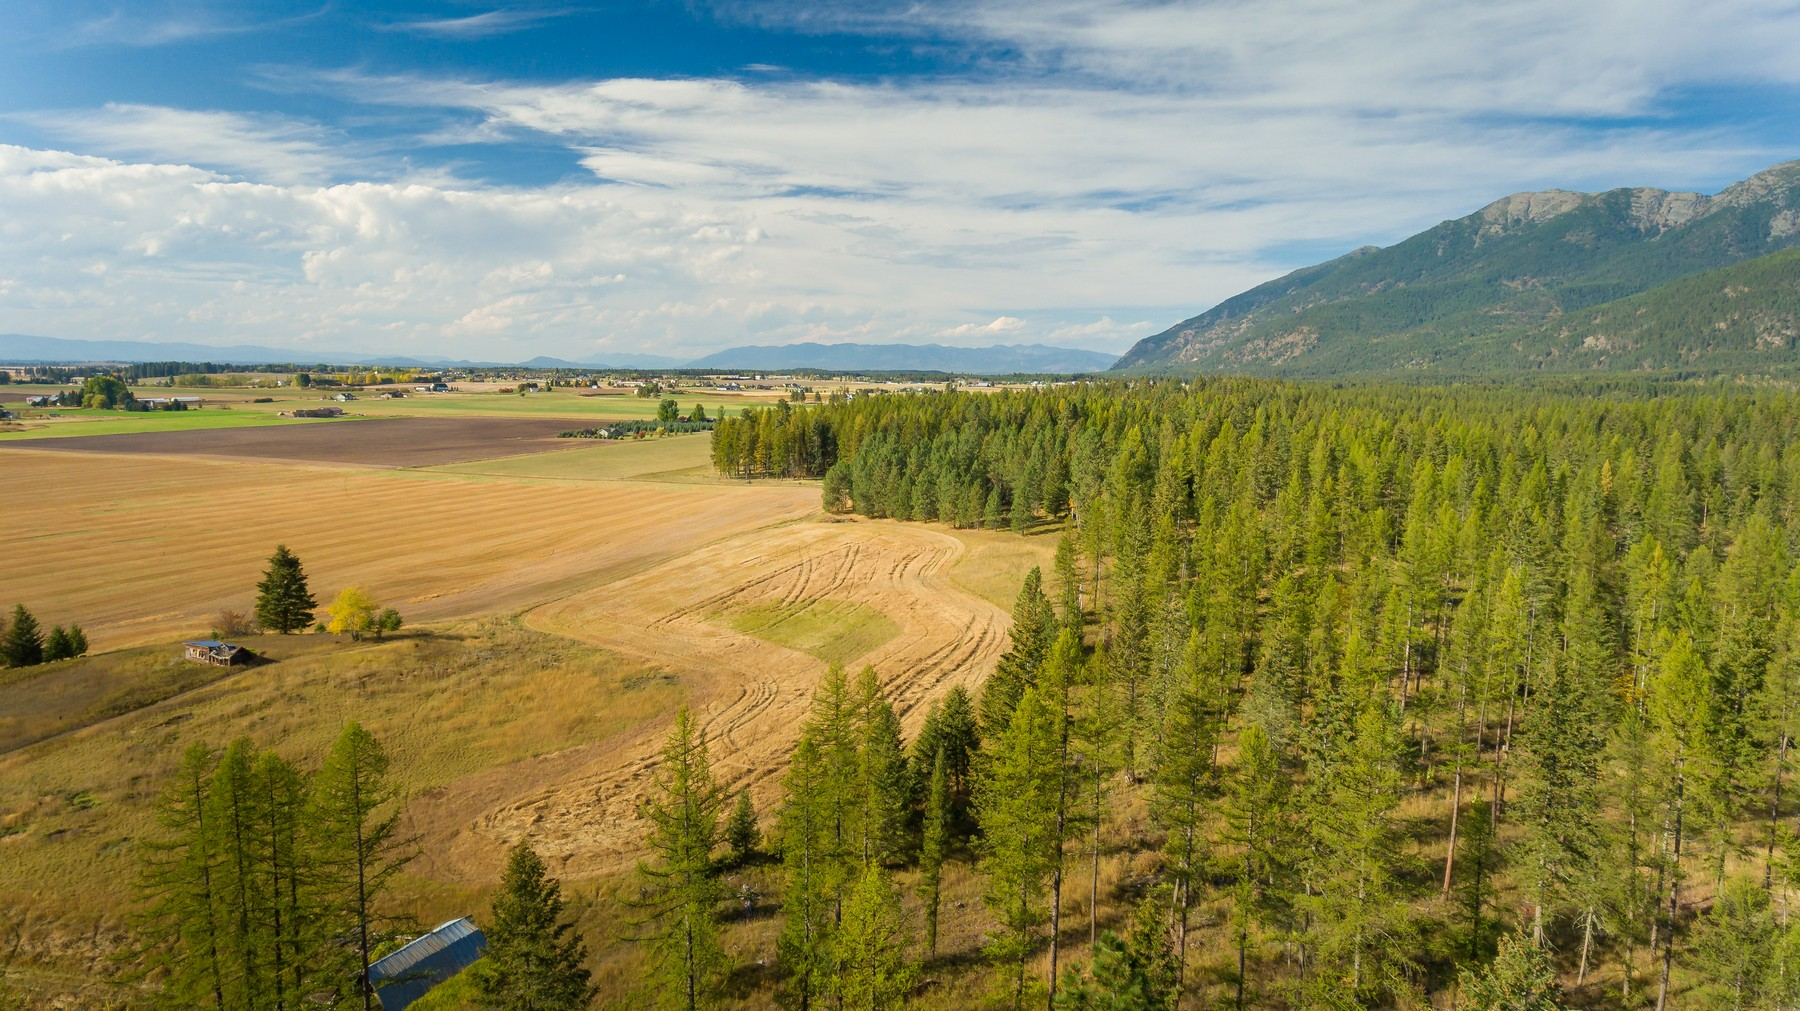 Additional photo for property listing at 395 Kauffman Ln , Kalispell, MT 59901 395  Kauffman Ln Kalispell, Montana 59901 United States